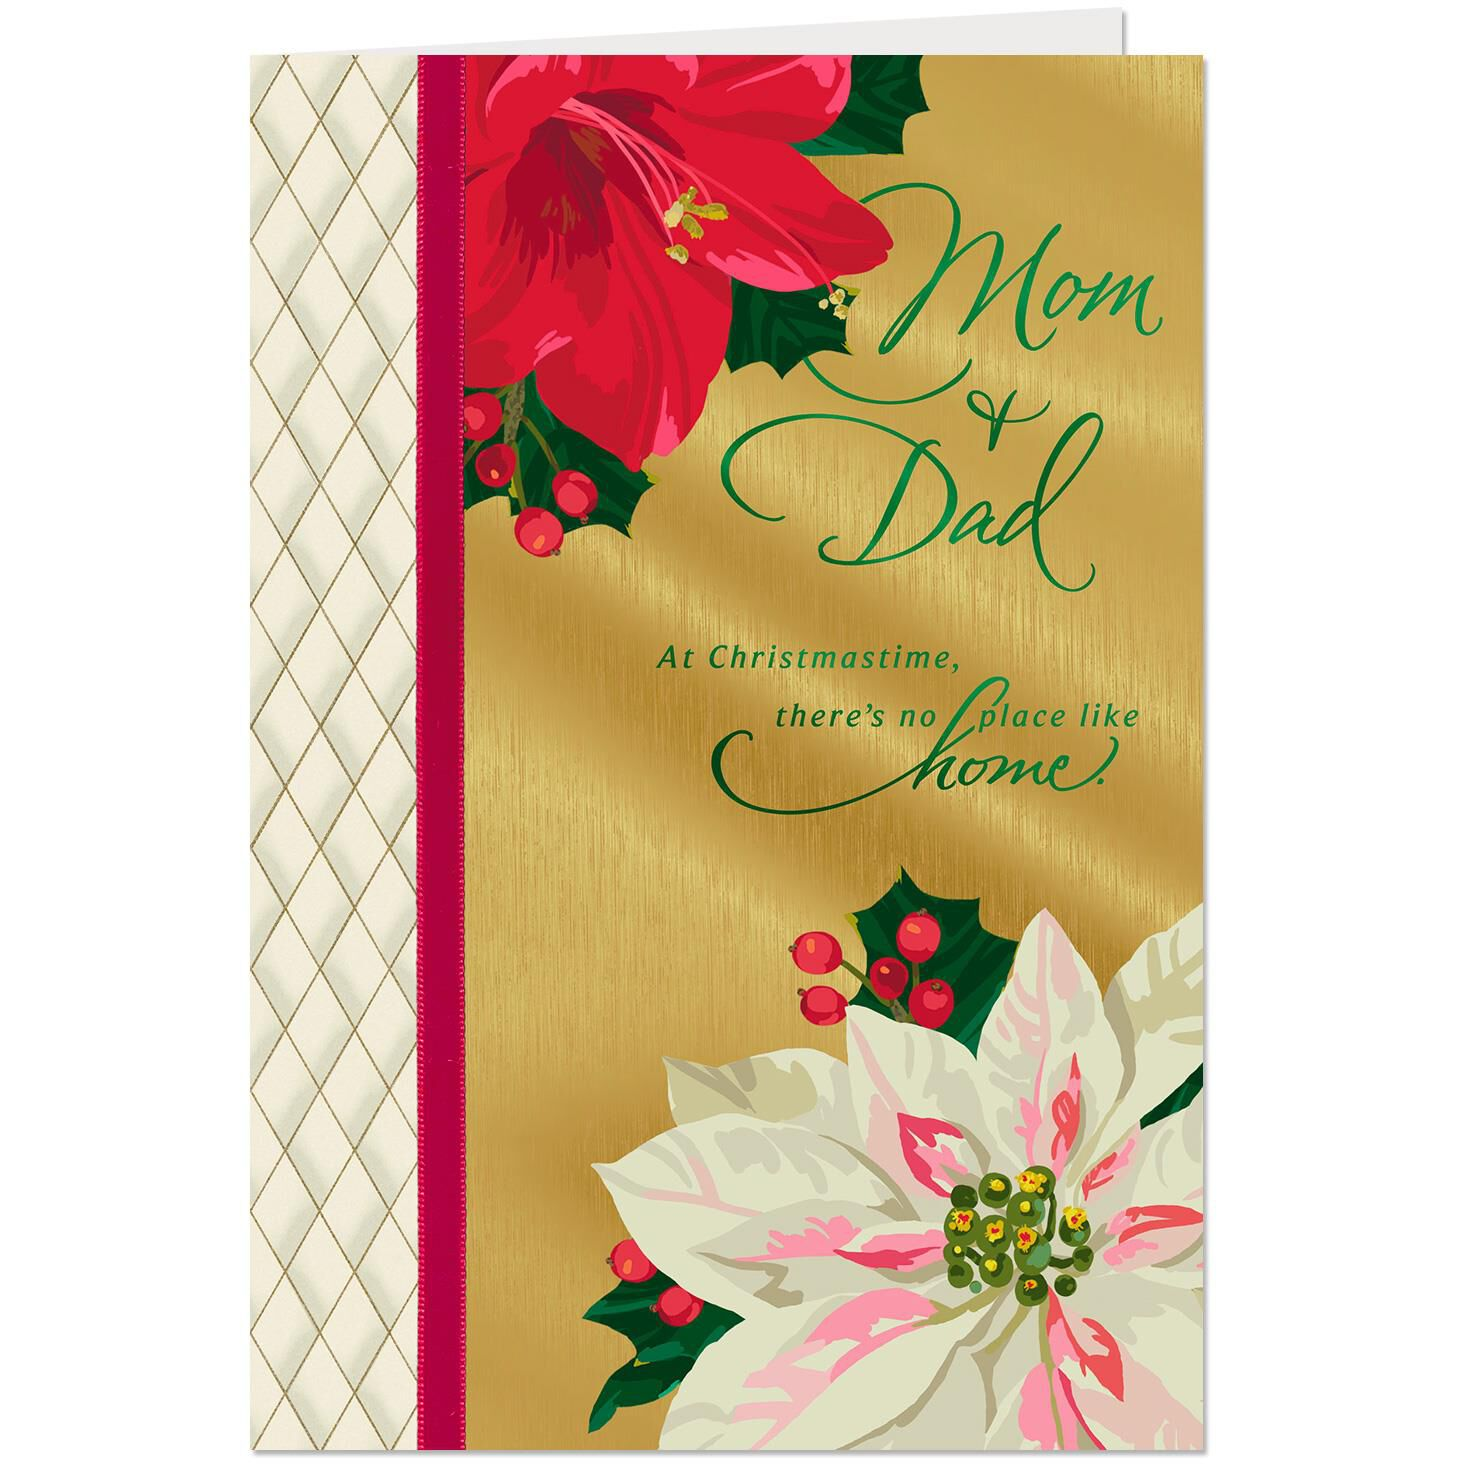 There Is No Place Like Home Christmas Card for Mom and Dad ...